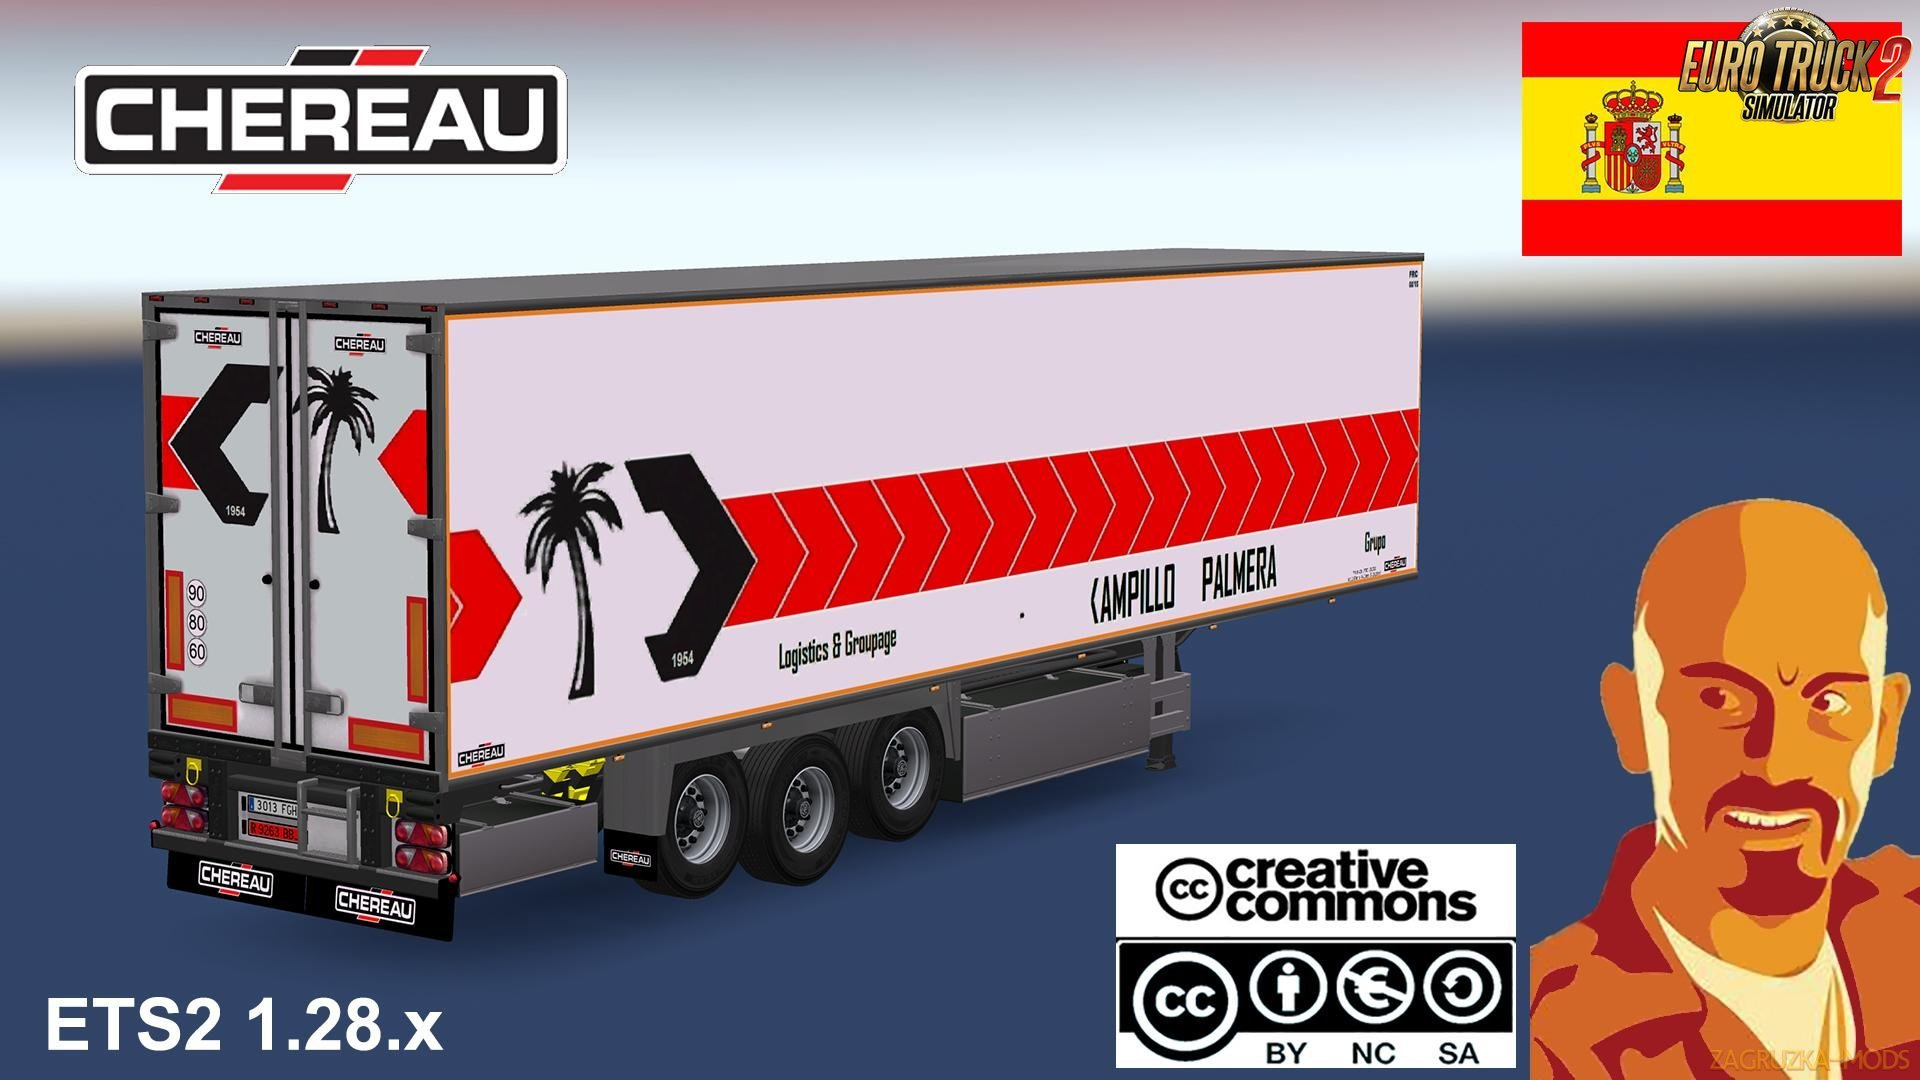 Chereau Spanish Agencies Trailer [1.28.x]